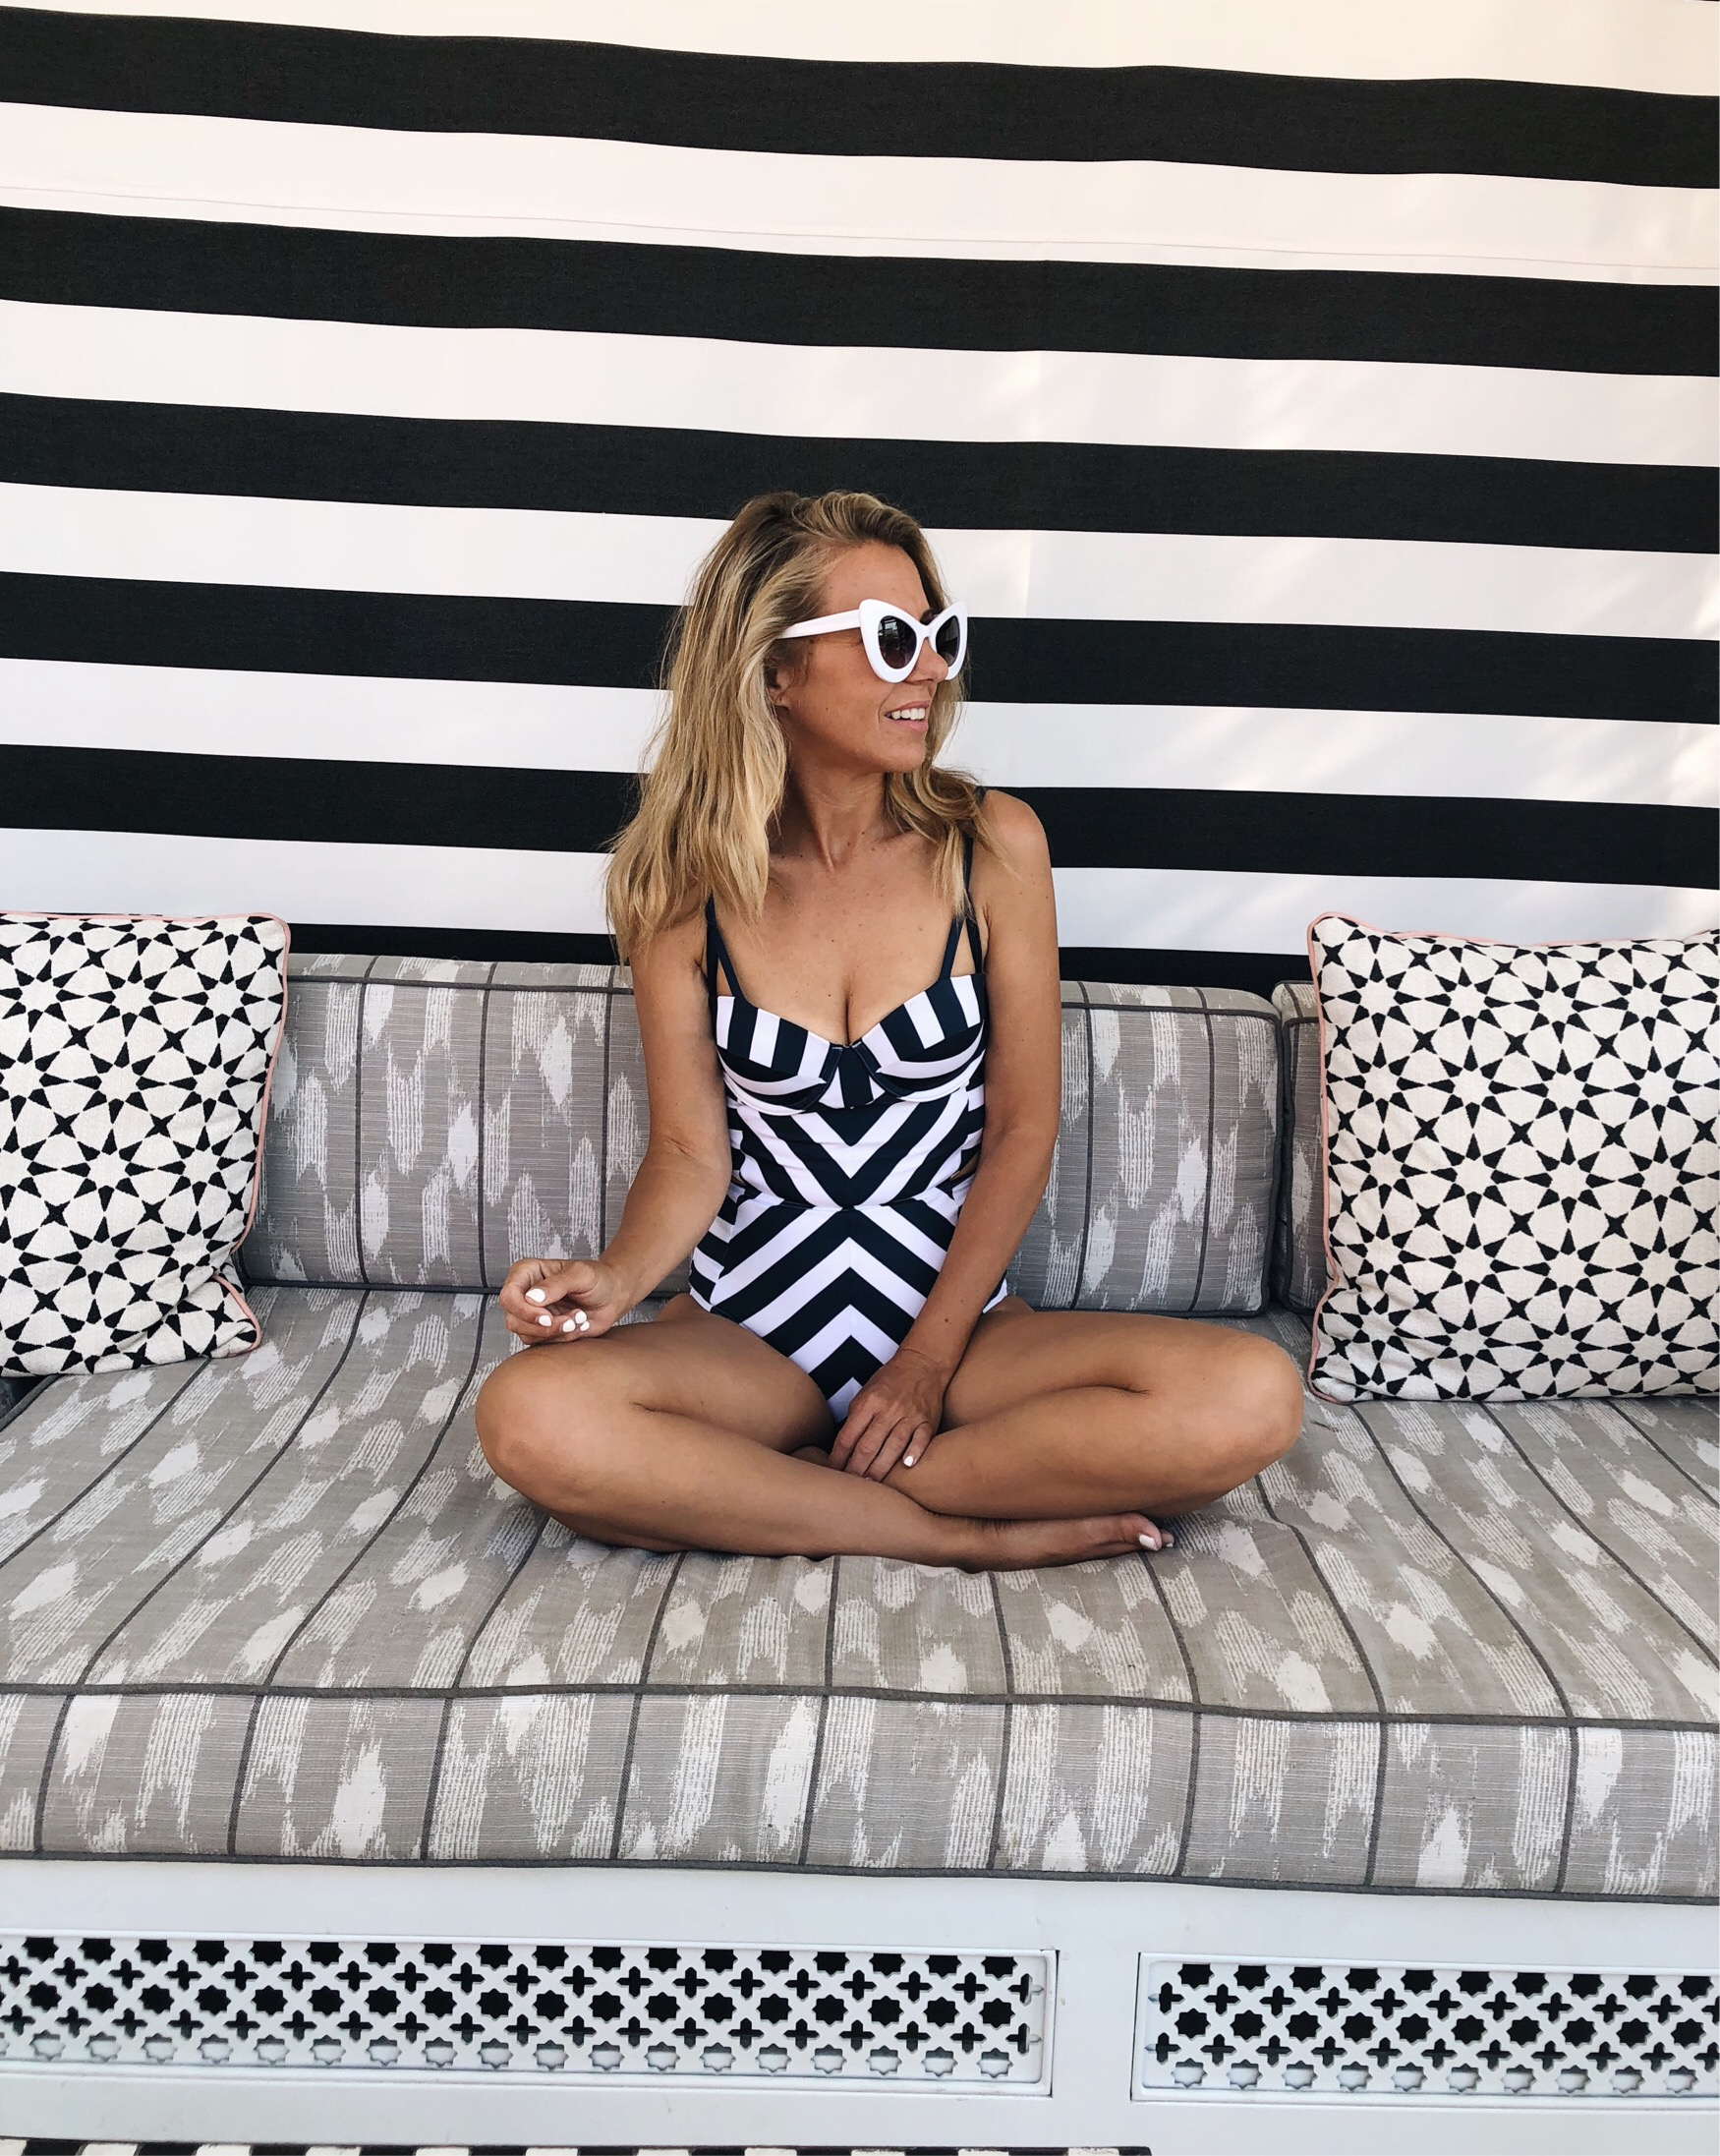 ANNIVERSARY WEEKEND GETAWAY AT THE SANDS HOTEL- Jaclyn De Leon Style + PALM SPRINGS HOTEL + BOHEMIAN + ONE PIECE SWIMSUIT + RETRO SUNGLASSES + CABANA AT THE POOL + RETRO STYLE SWIMSUIT + SUMMER STYLE + VACATION + TRAVEL